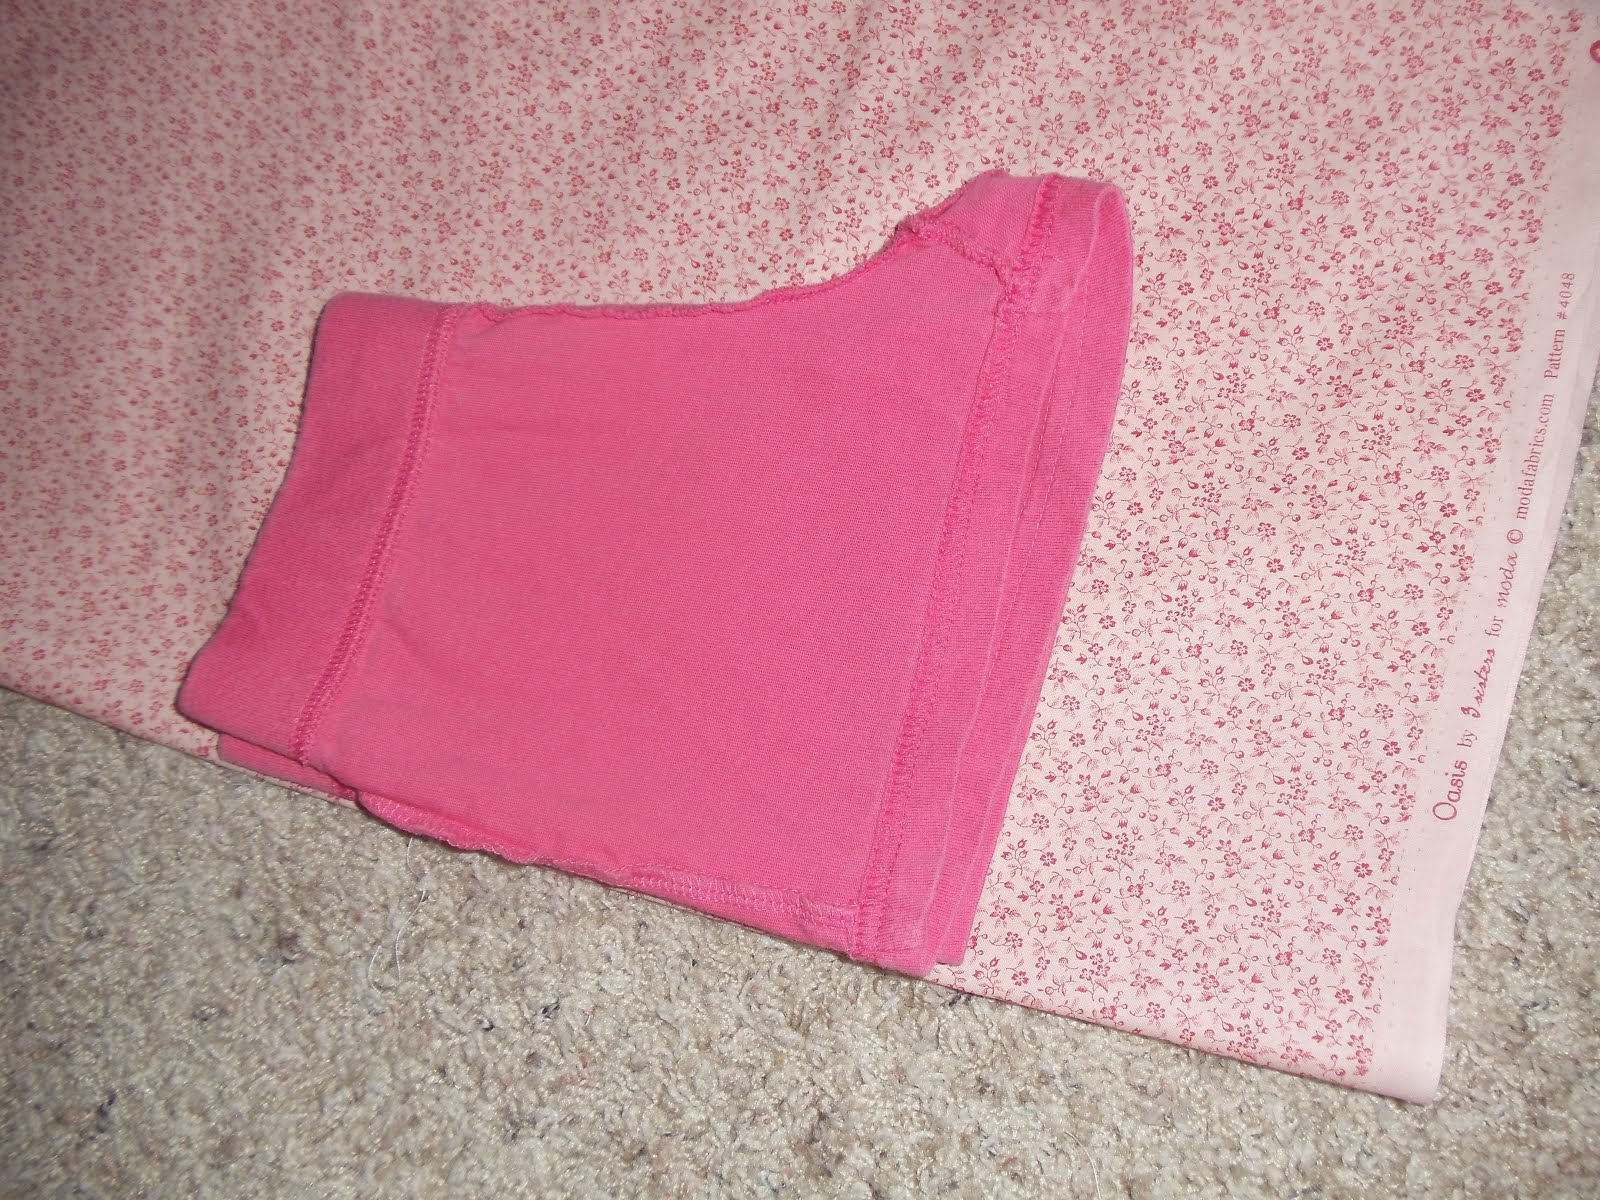 how to add a pocket to my pajama pants